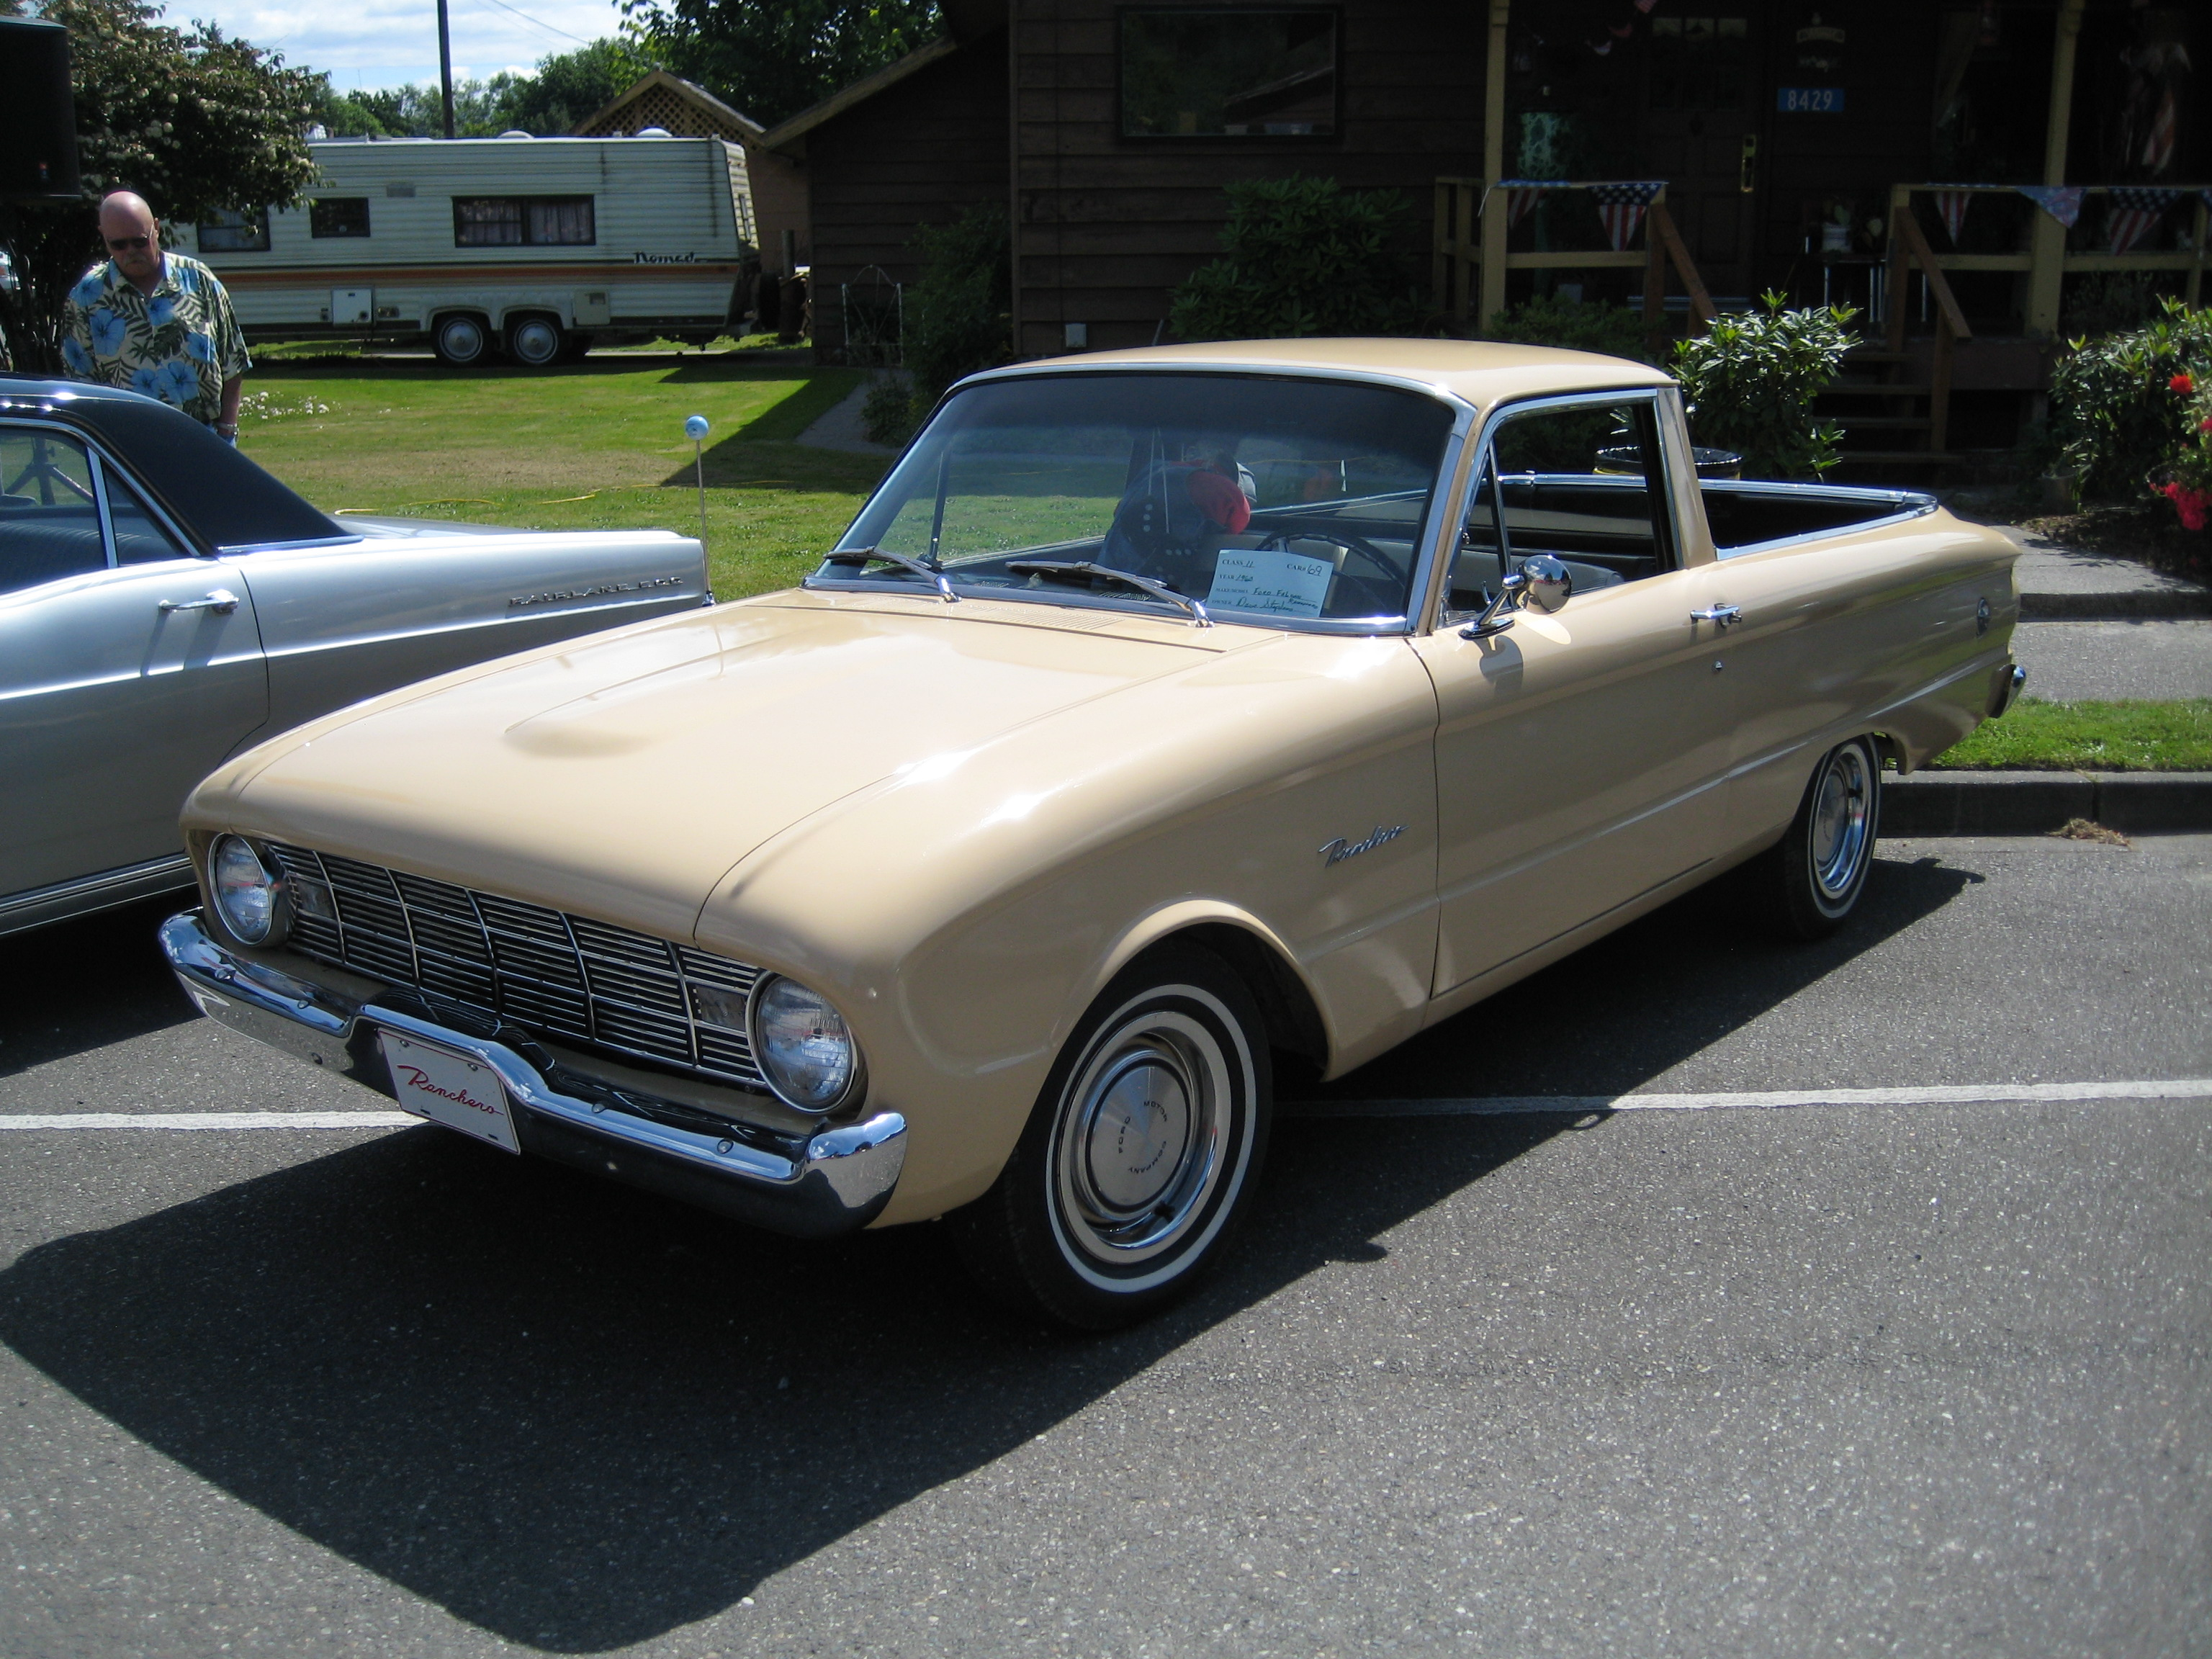 Ford Ranchero moreover 1971 Mustang Paint Colors Codes additionally 1961 Ford Ranchero Custom Pickup moreover 7616310824 furthermore Round Rubber Plug 2 1 2 OD X 1 5 8 I D. on ford falcon ranchero